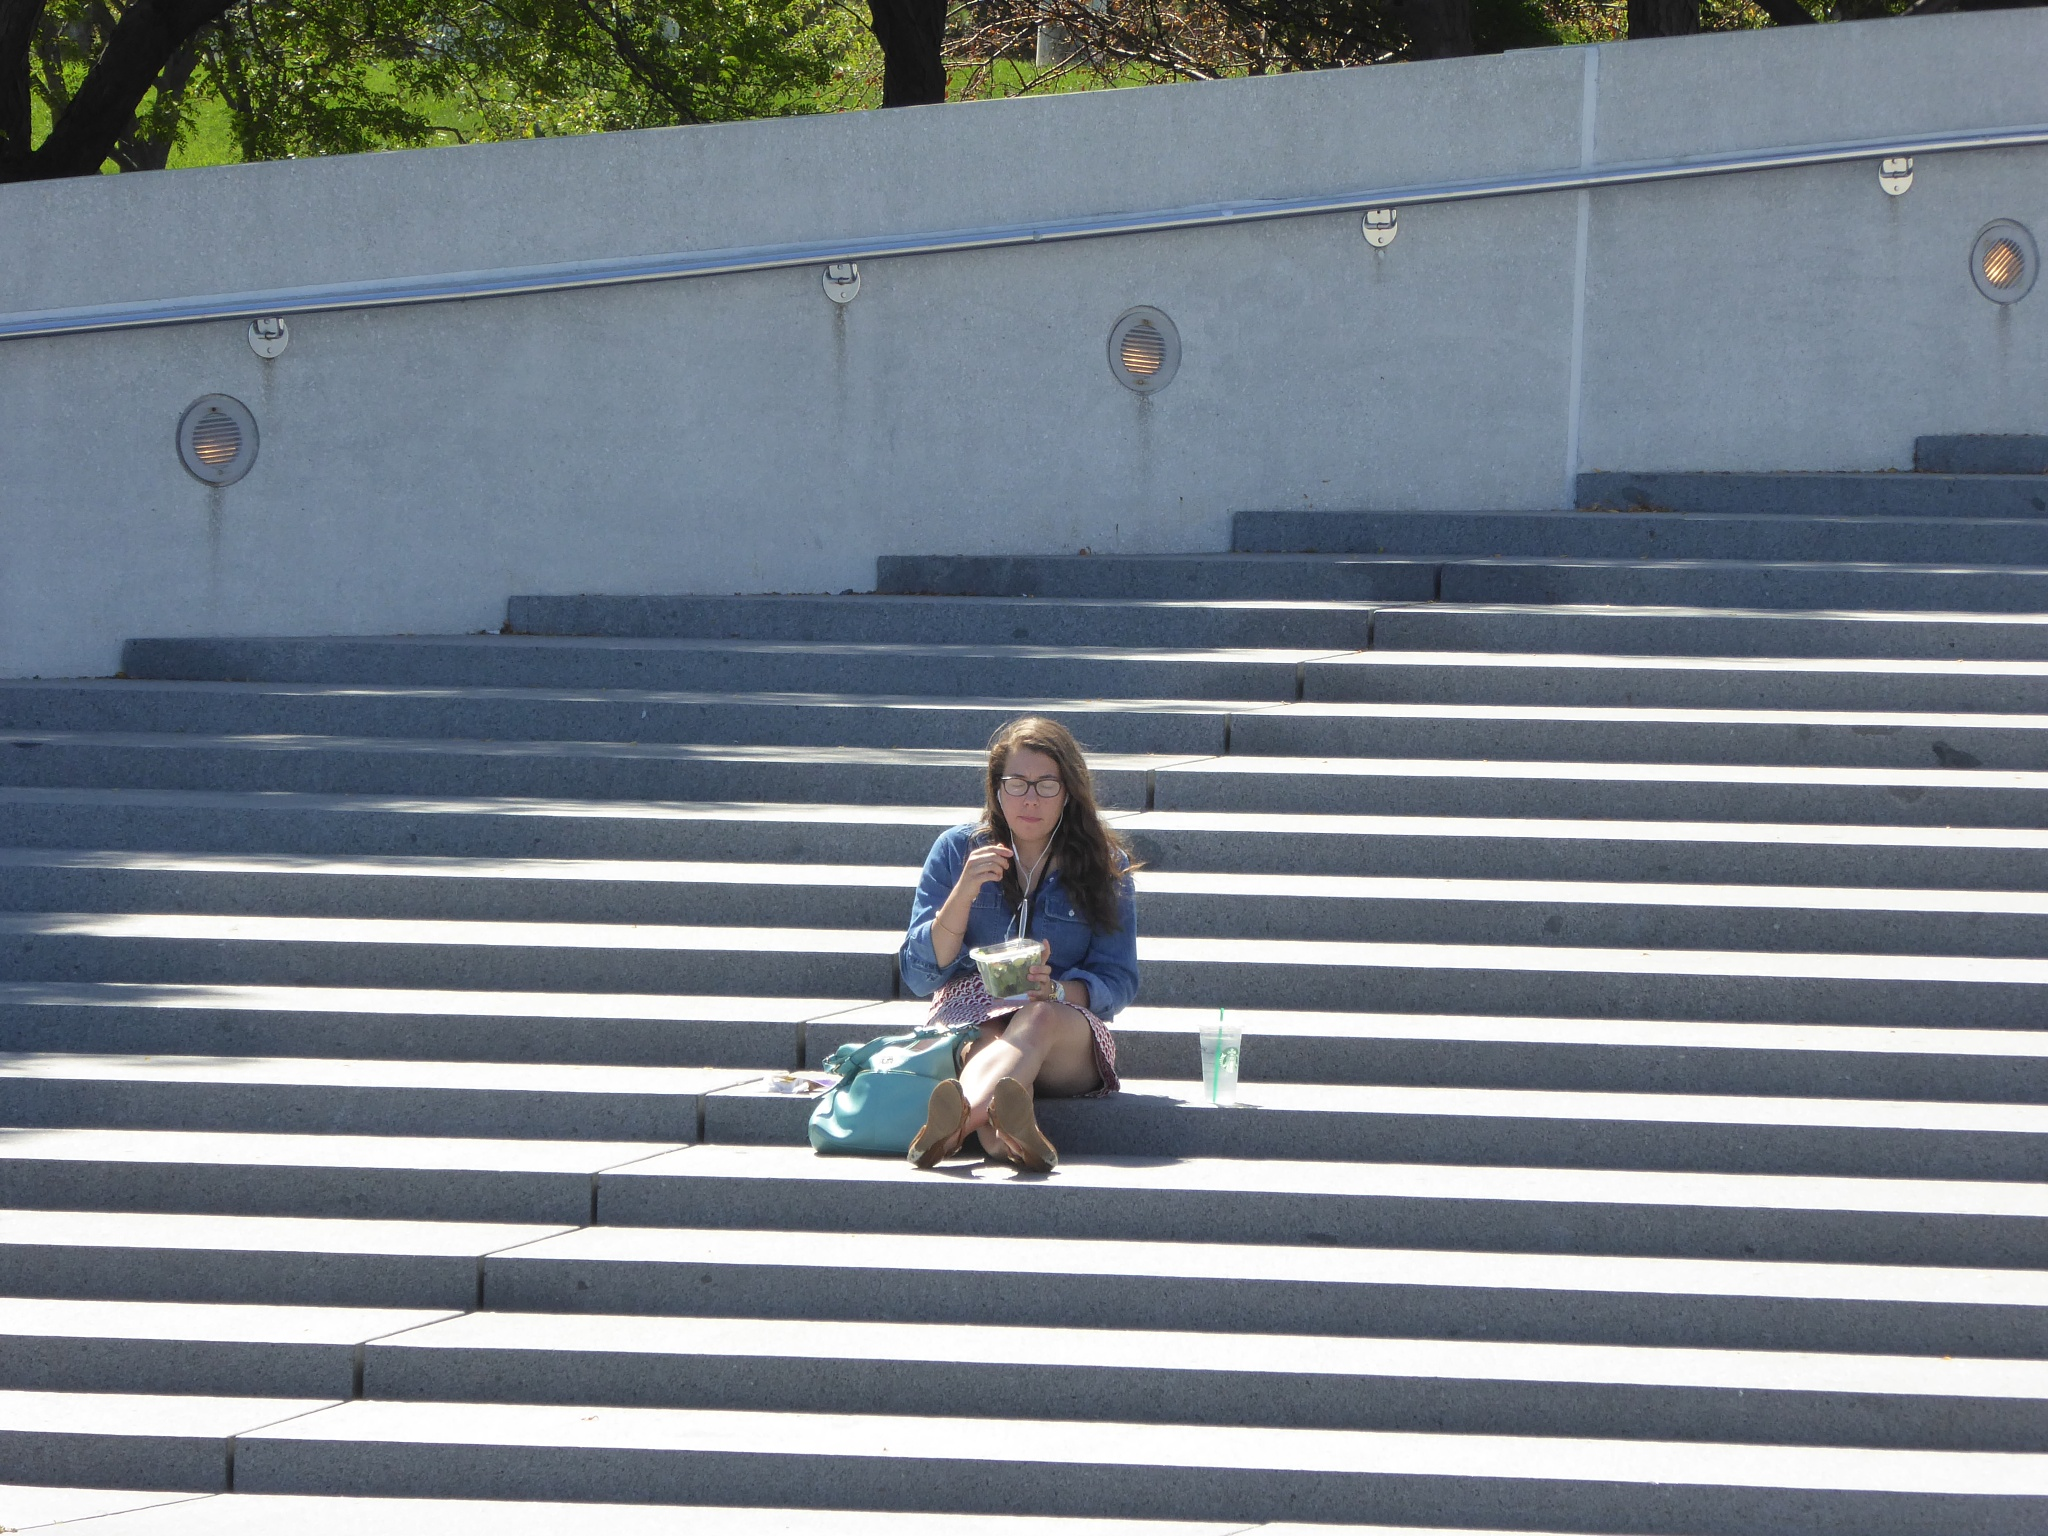 On the steps  by Anita Collins